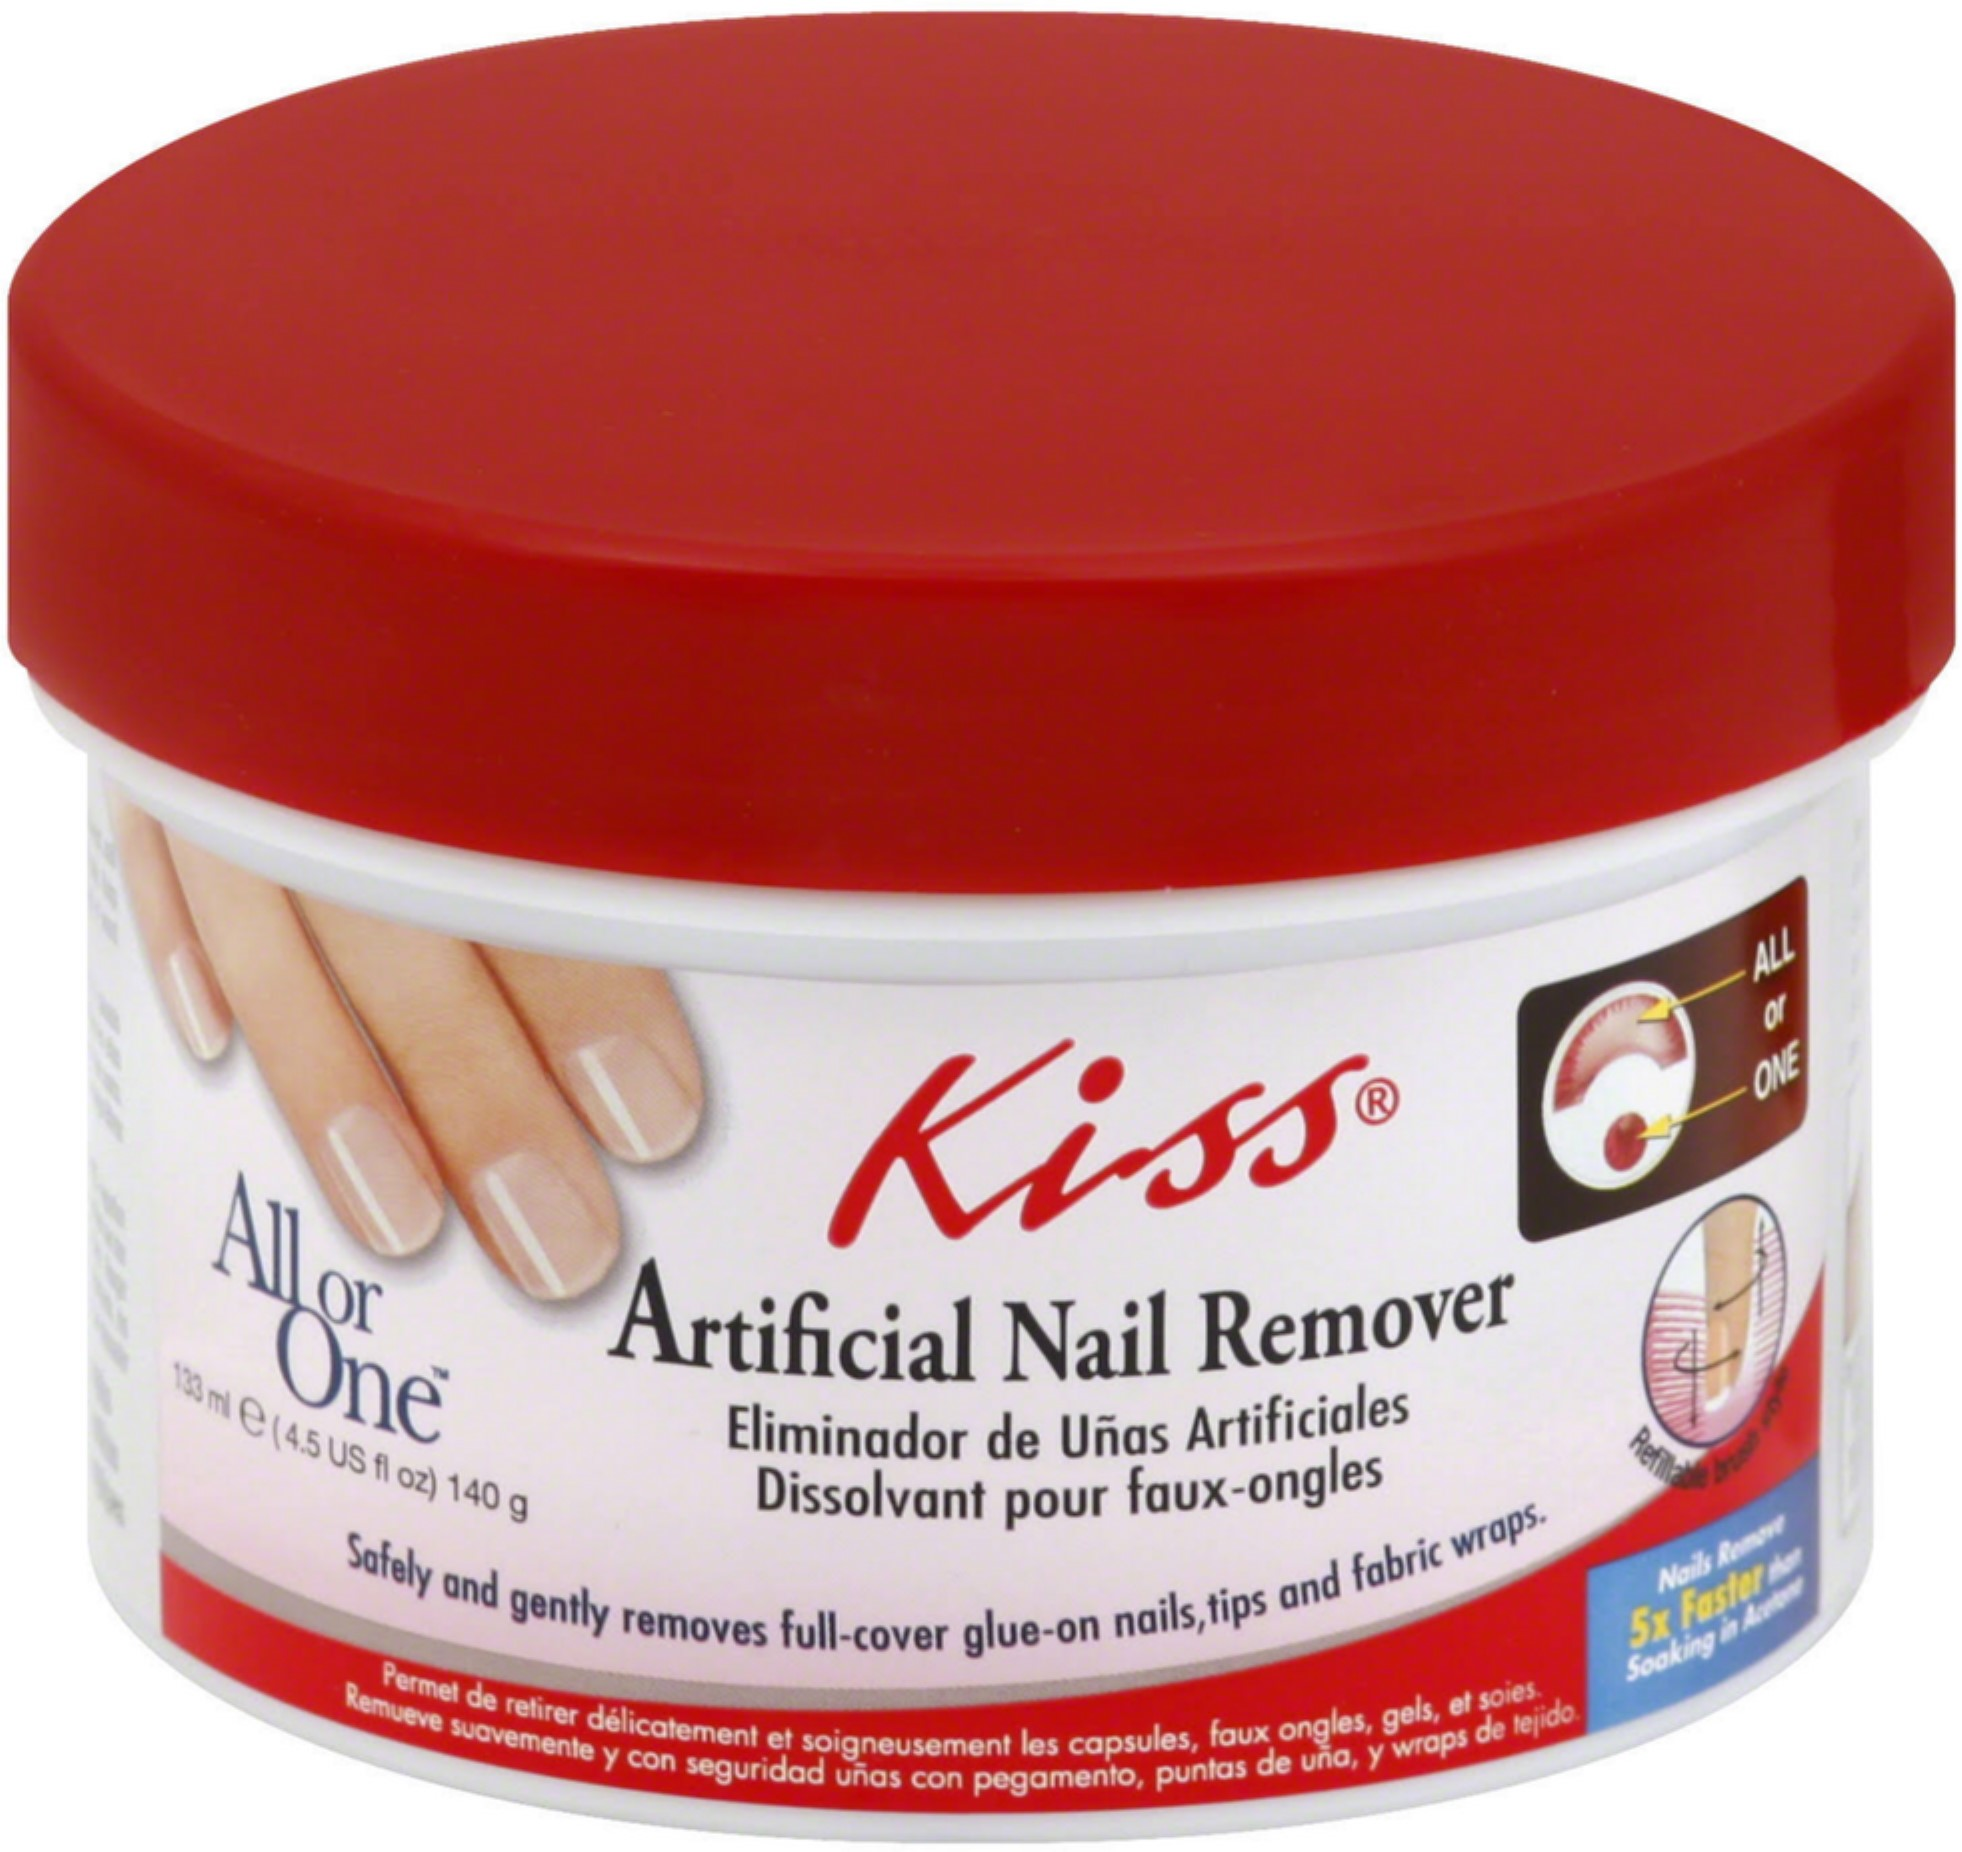 Kiss Products Kiss All or One Artificial Nail Remover, 4.5 oz